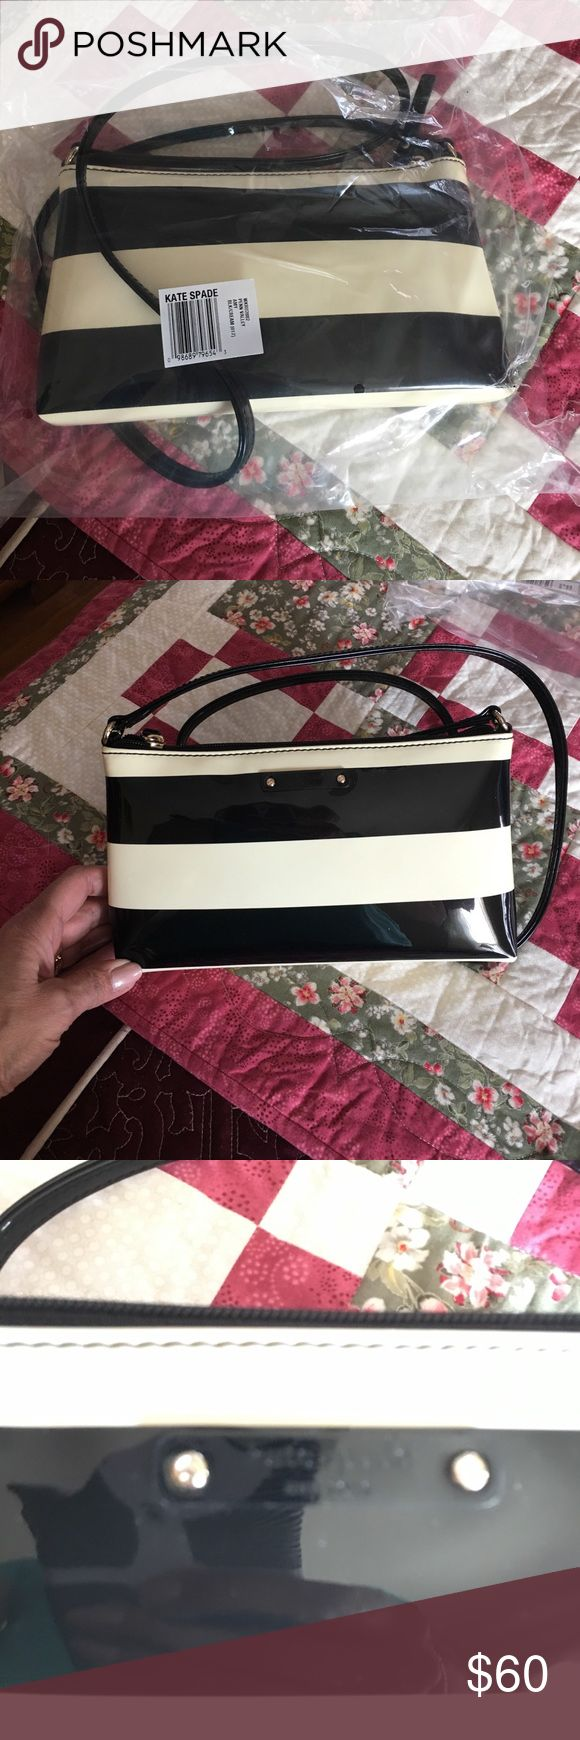 Brand New!  KS Crossbody bag New bag never used.  Crossbody in striped patent PVC . Front printed kate spade new york license plate Zip closure. Lined interior. 6''h x 10''w x 1.5''d drop length: 18''.   Price firm unless purchased in a bundle. Thank you.  Not trading. kate spade Bags Crossbody Bags